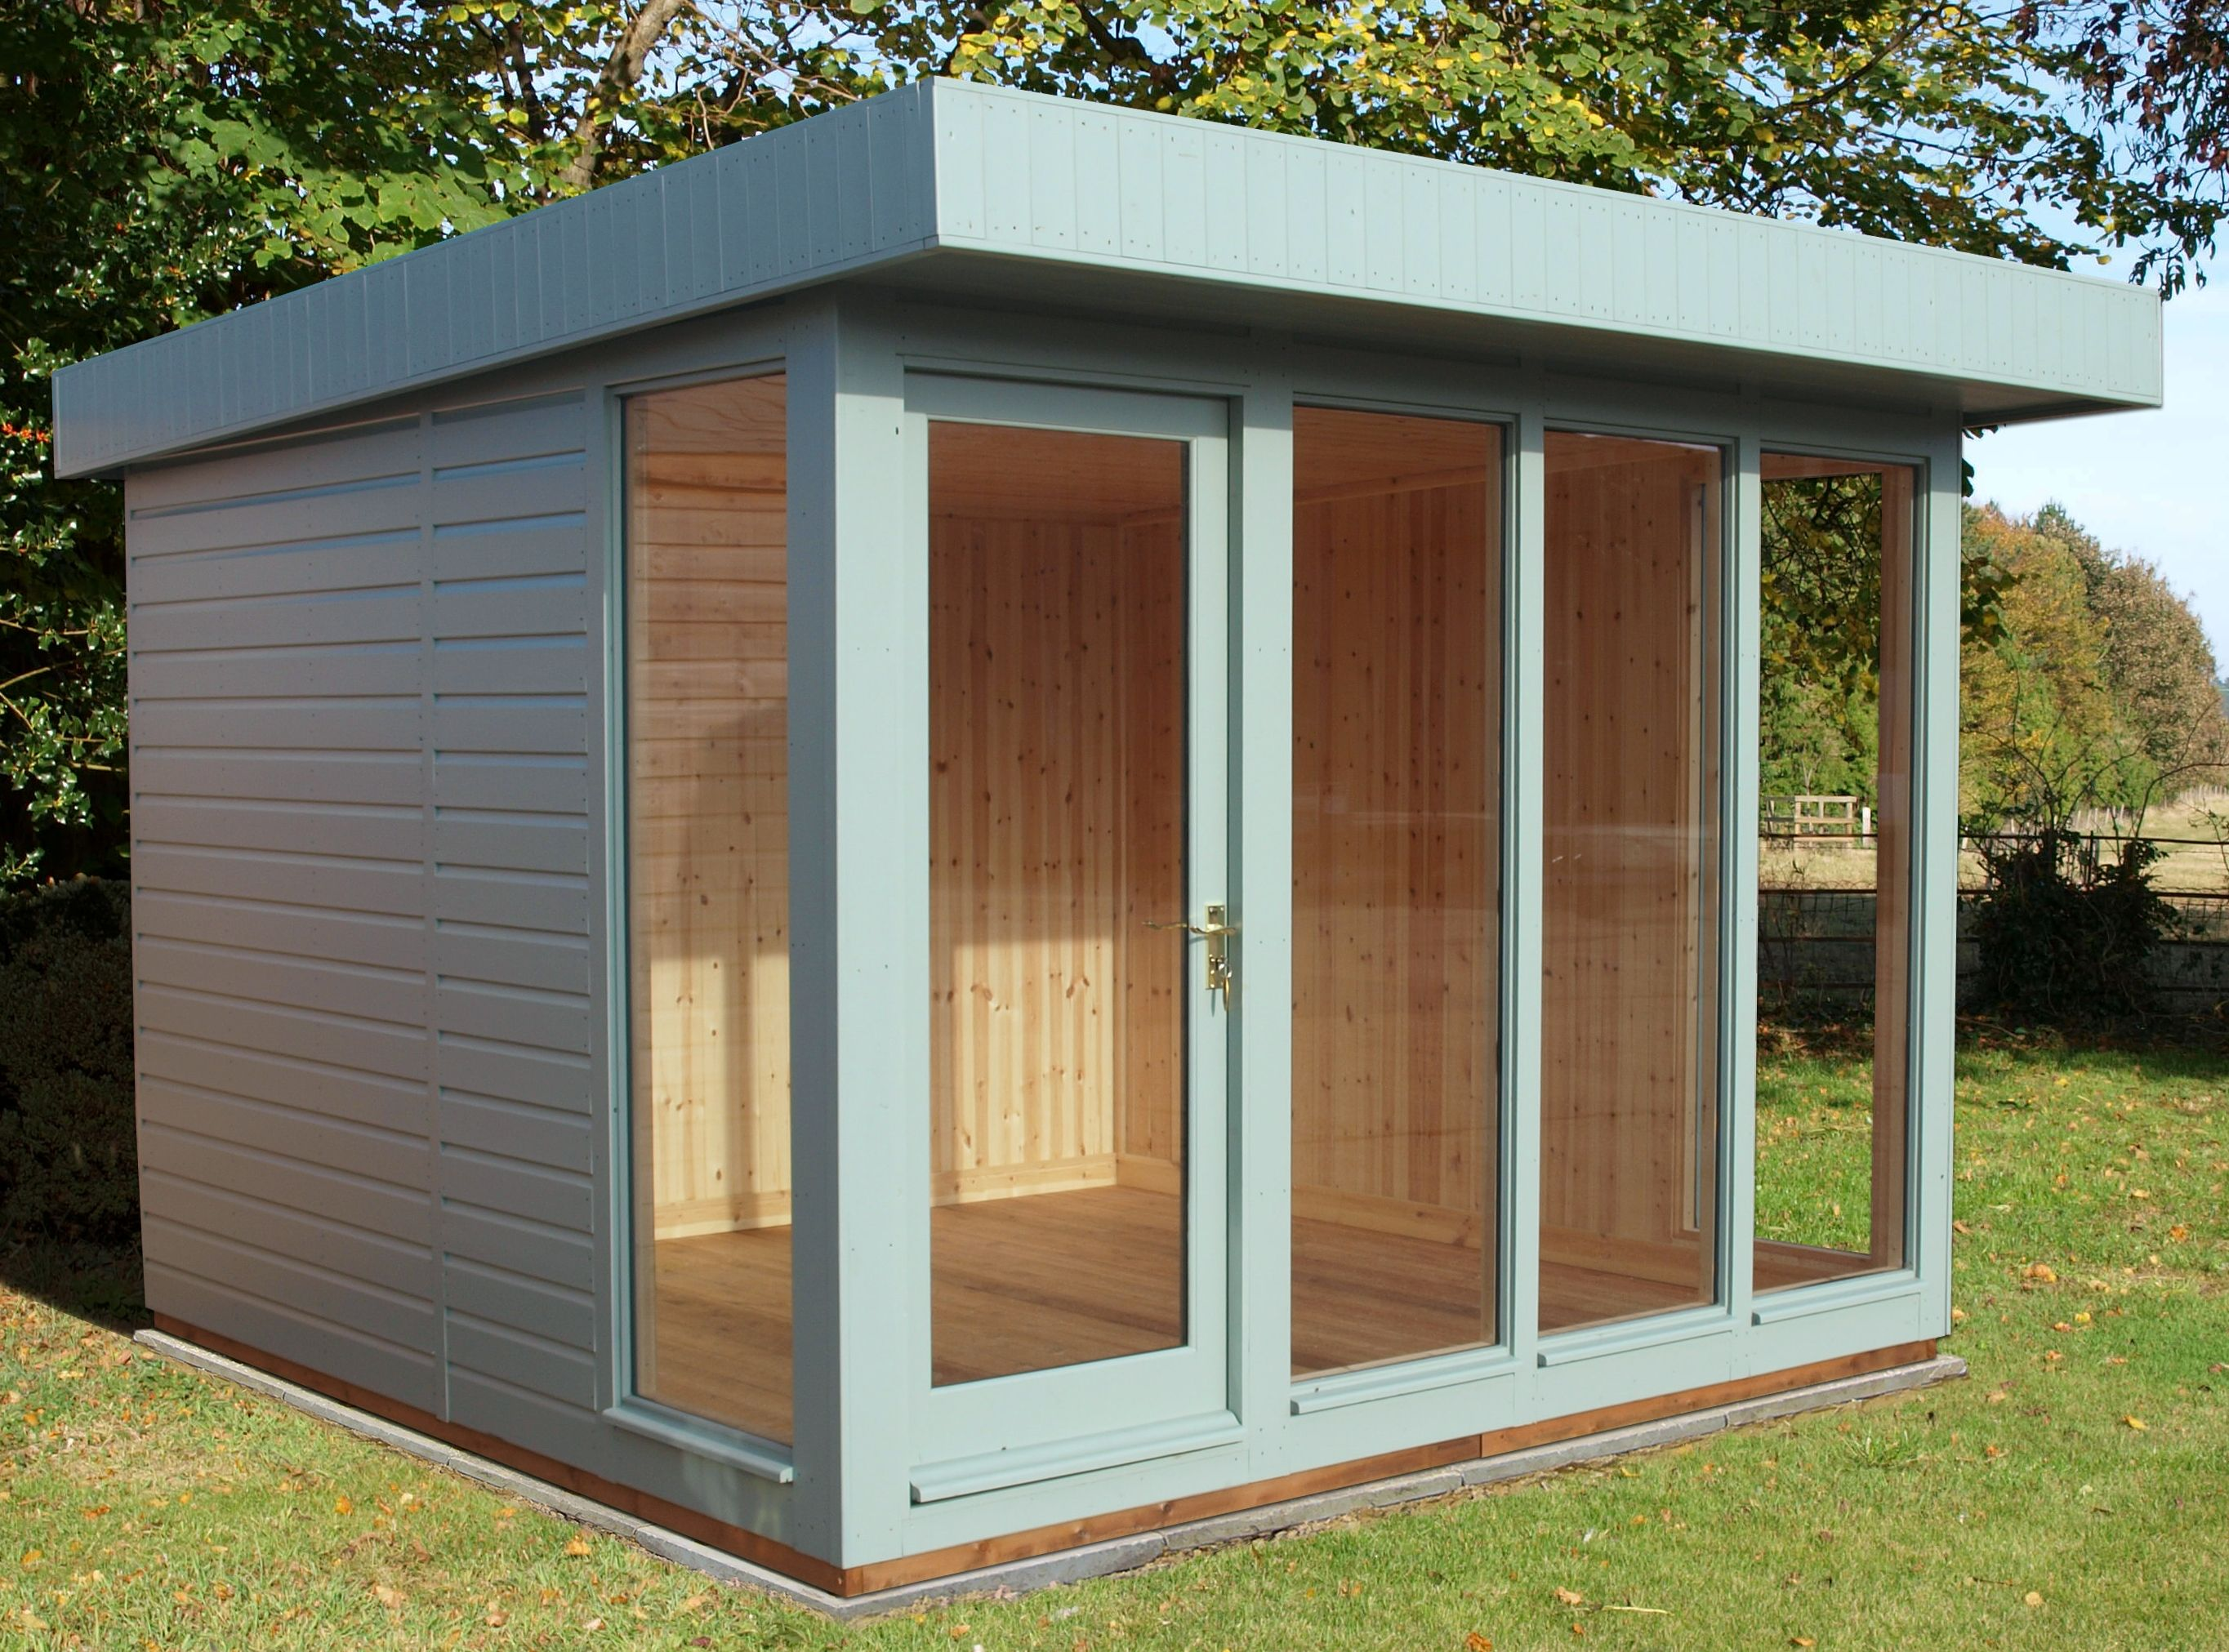 star texas outdoor by storage for structures sale in wood buildings austin garden built sheds quaker lone